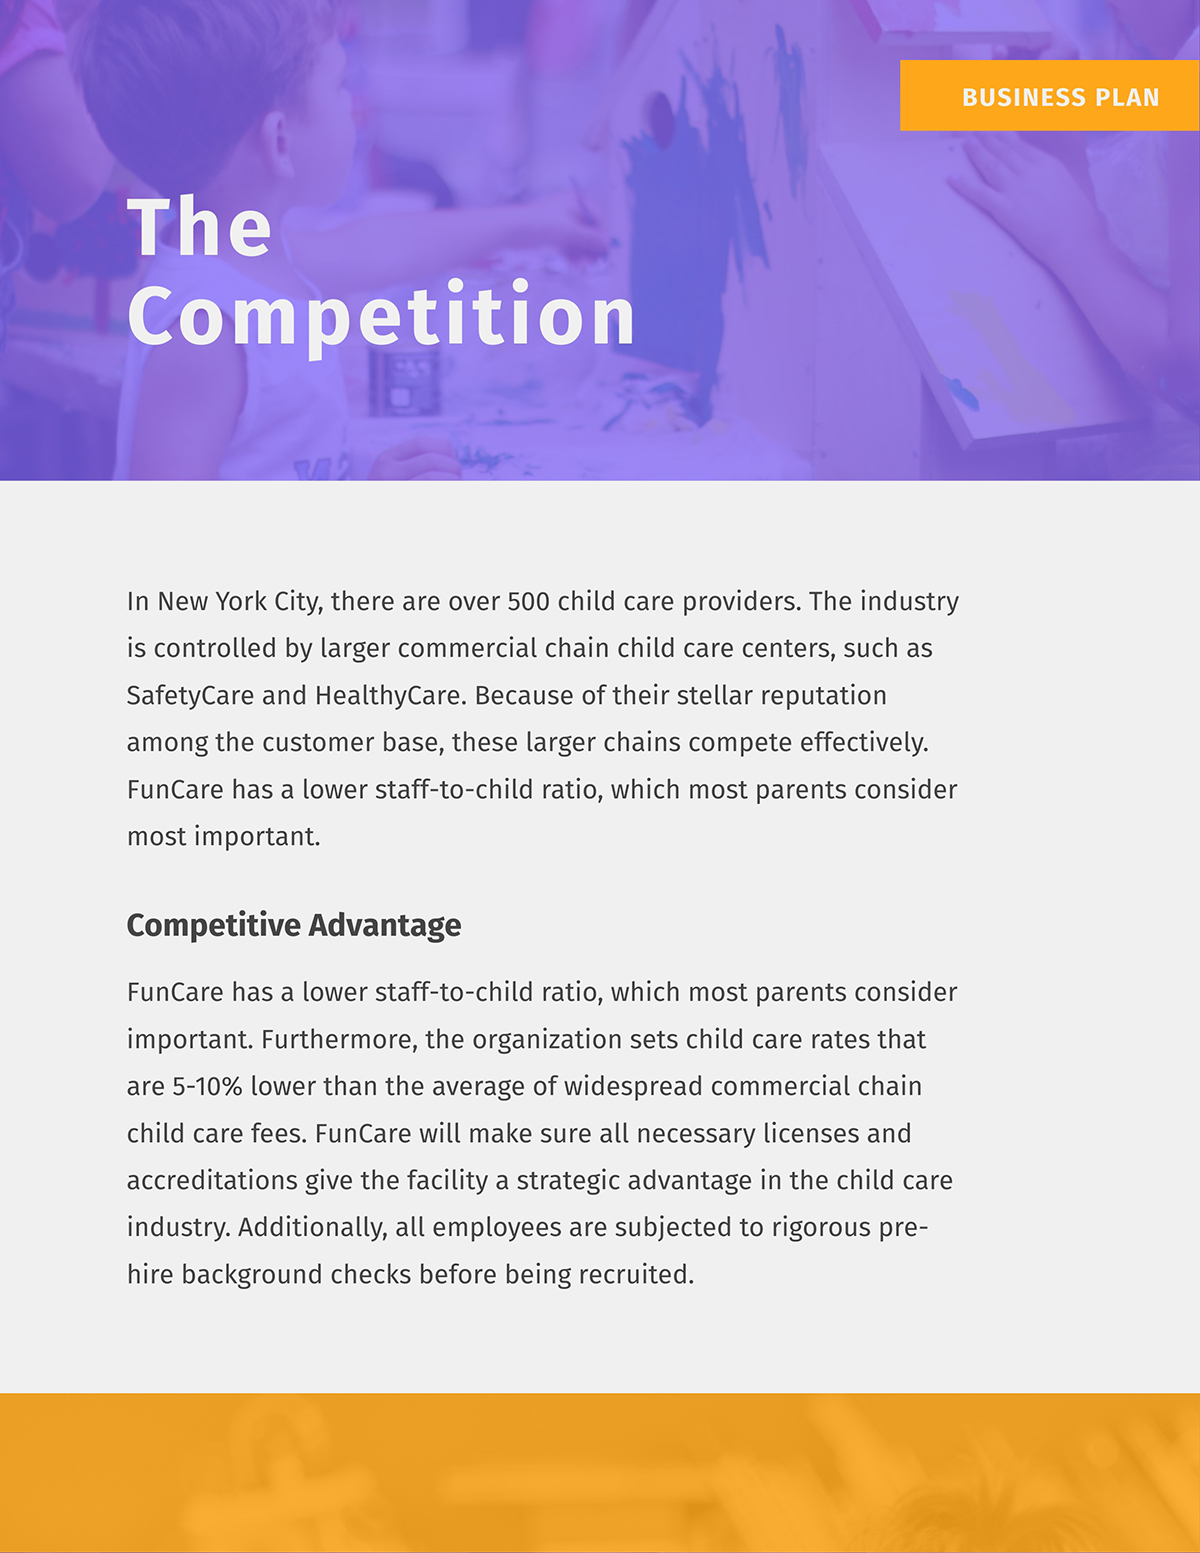 A competitive analysis page in a business plan template.